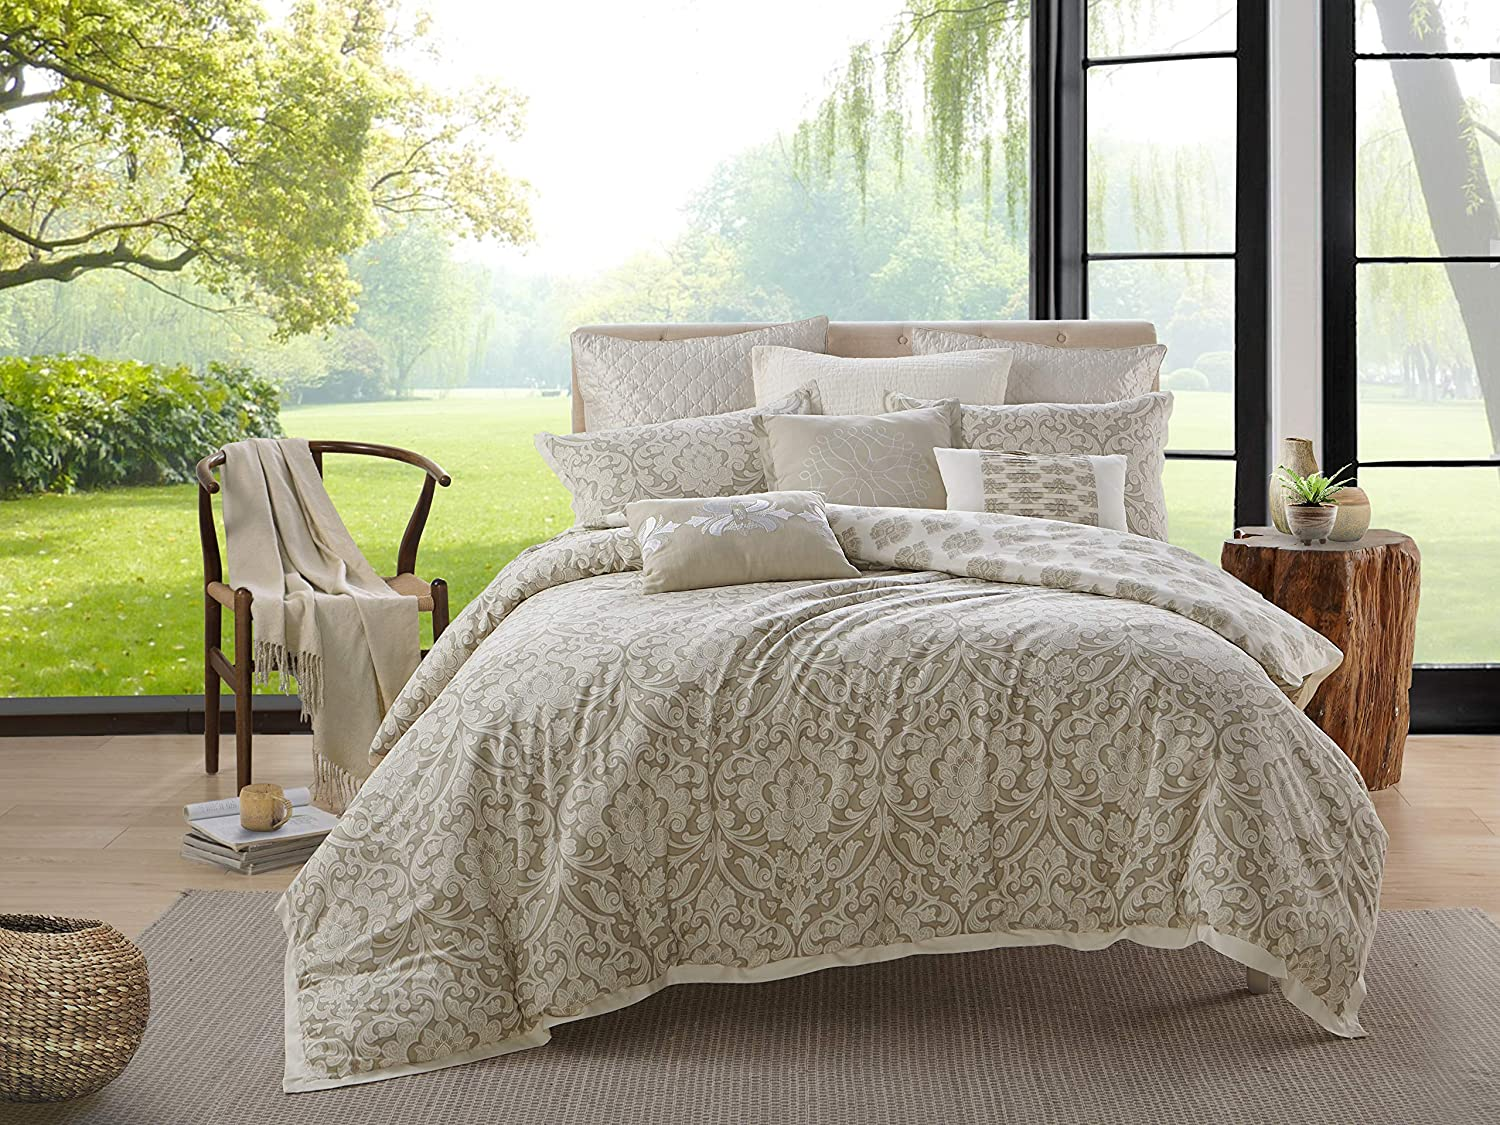 Ellen Tracy 100% Print Cotton Duvet & Shams 3-pc Bedding Set, Luxurious, Comfortable, Breathable, Soft and Durable, with Button Closure - Chandler, King